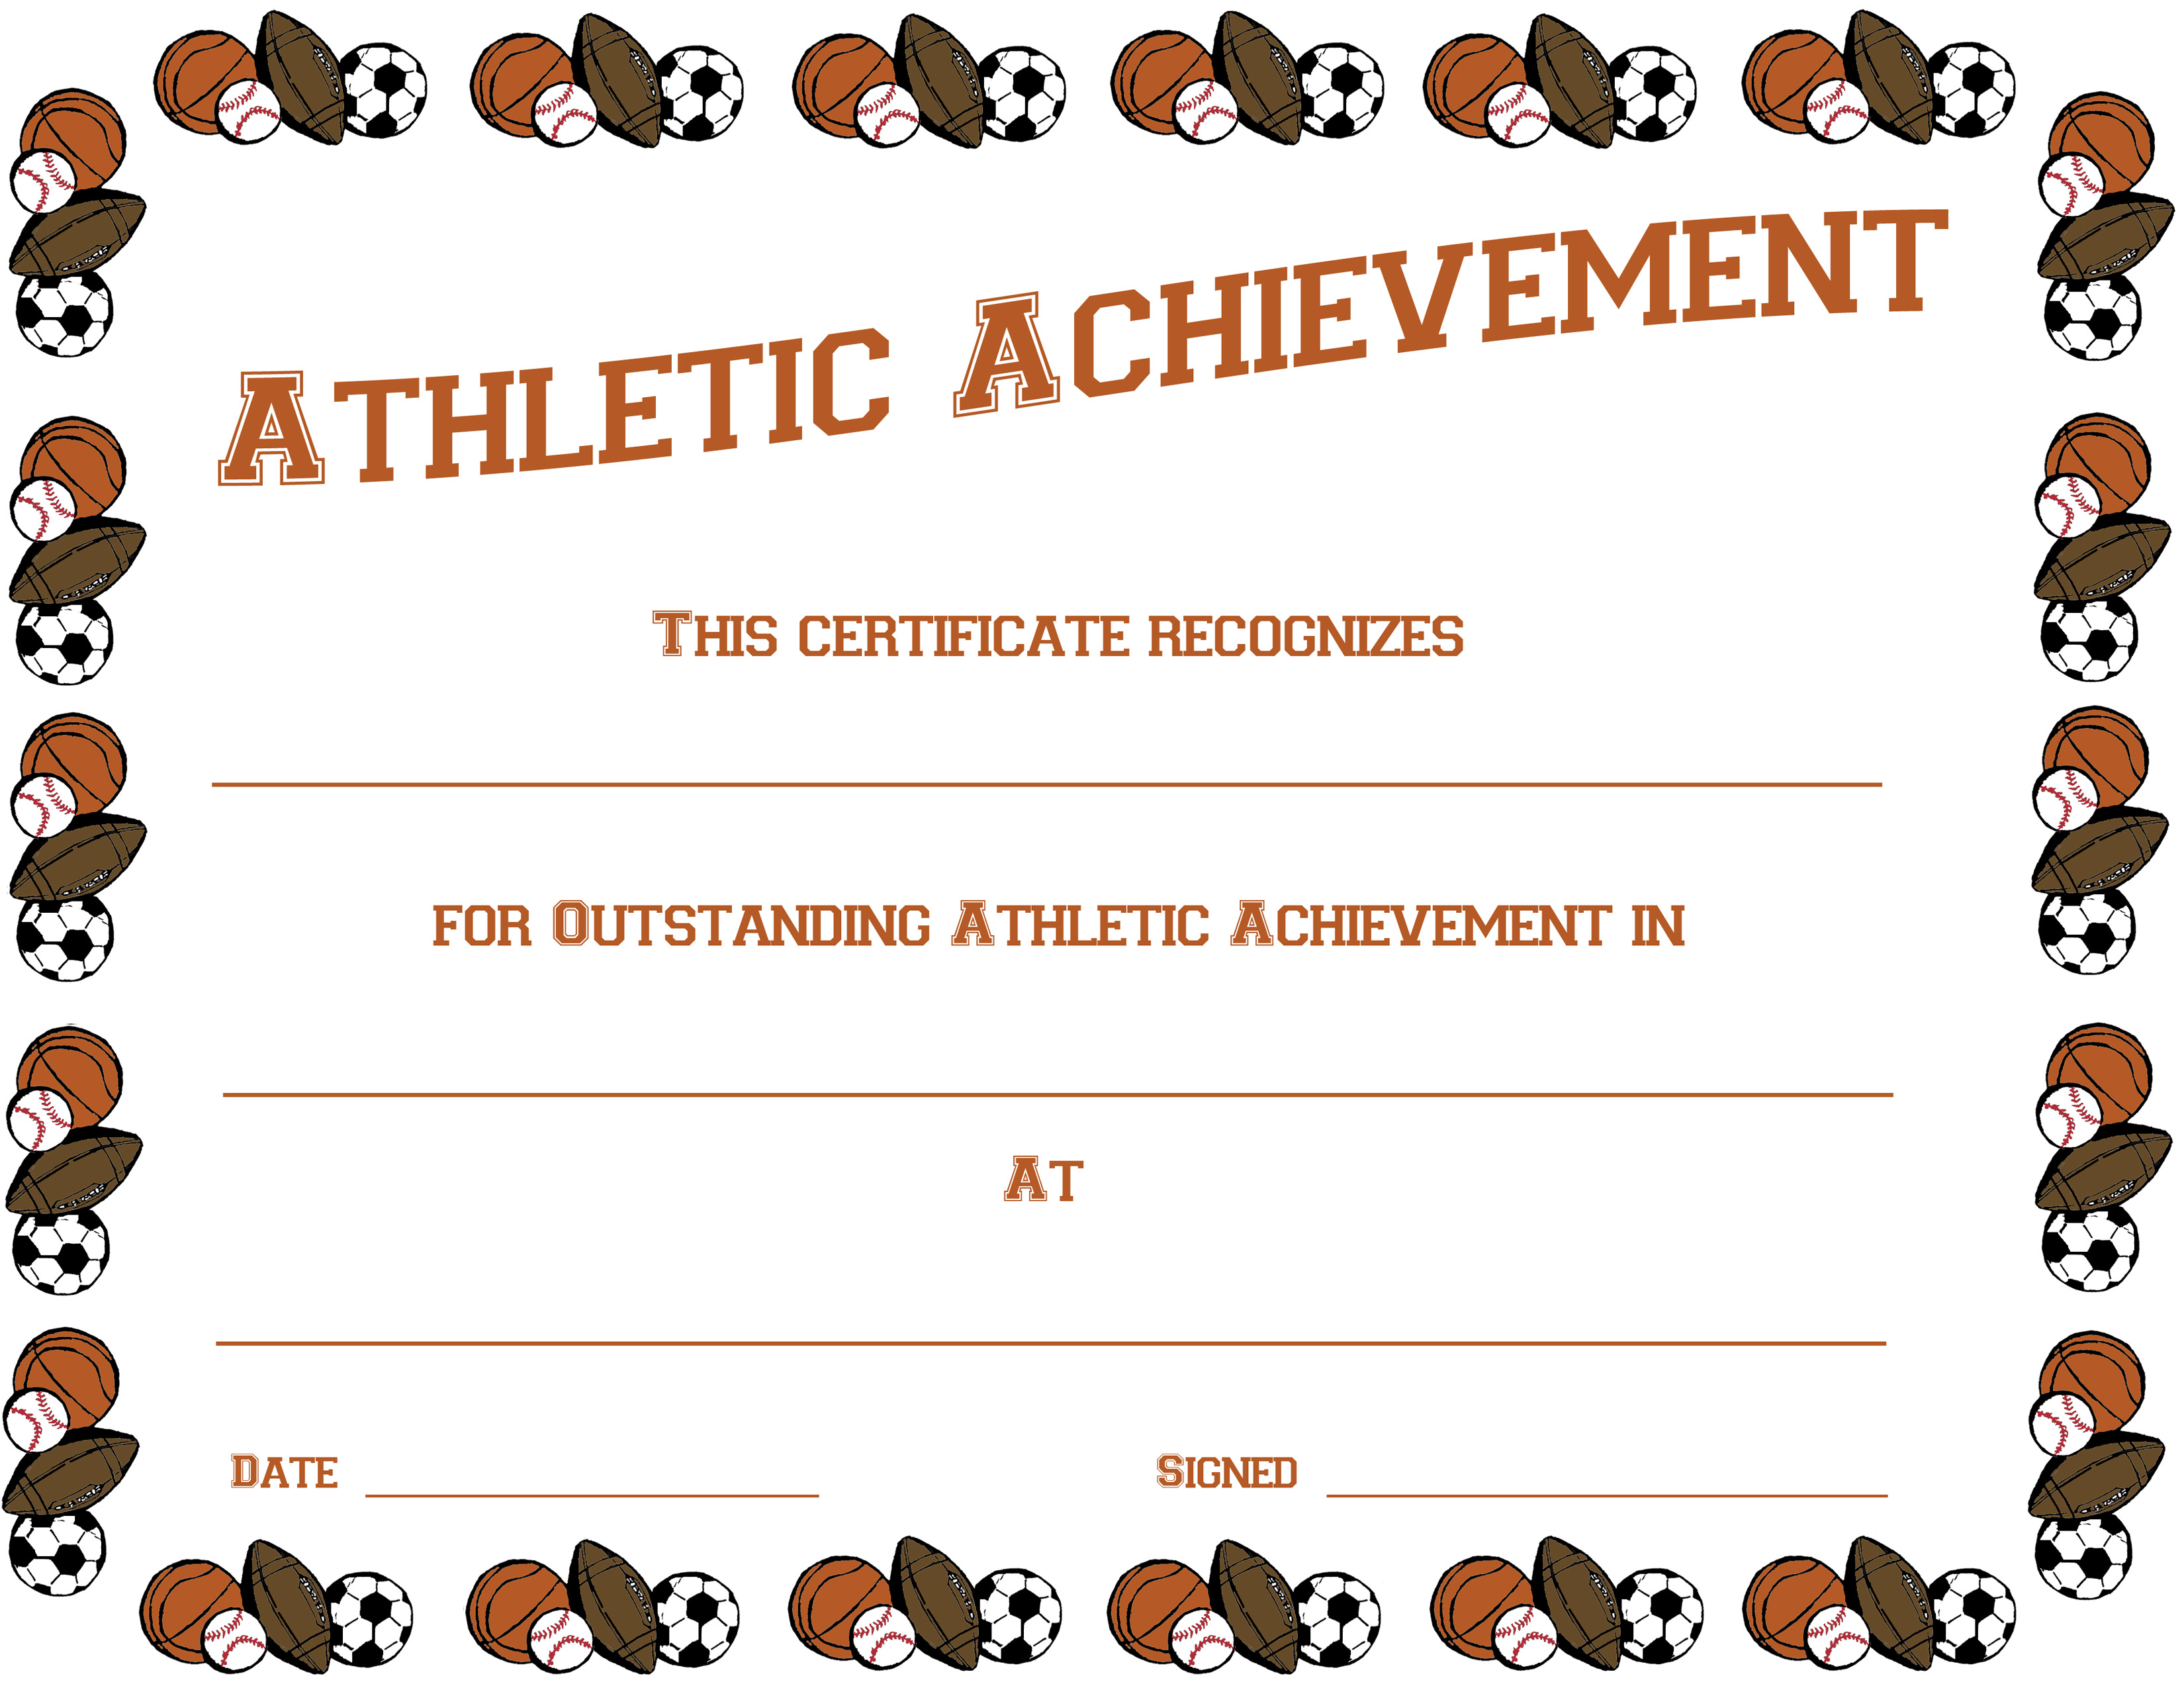 86 athletic certificate templates home certificate template awesome collection of sports certificates business cards and pap554 athletic certificate templates 1betcityfo Choice Image